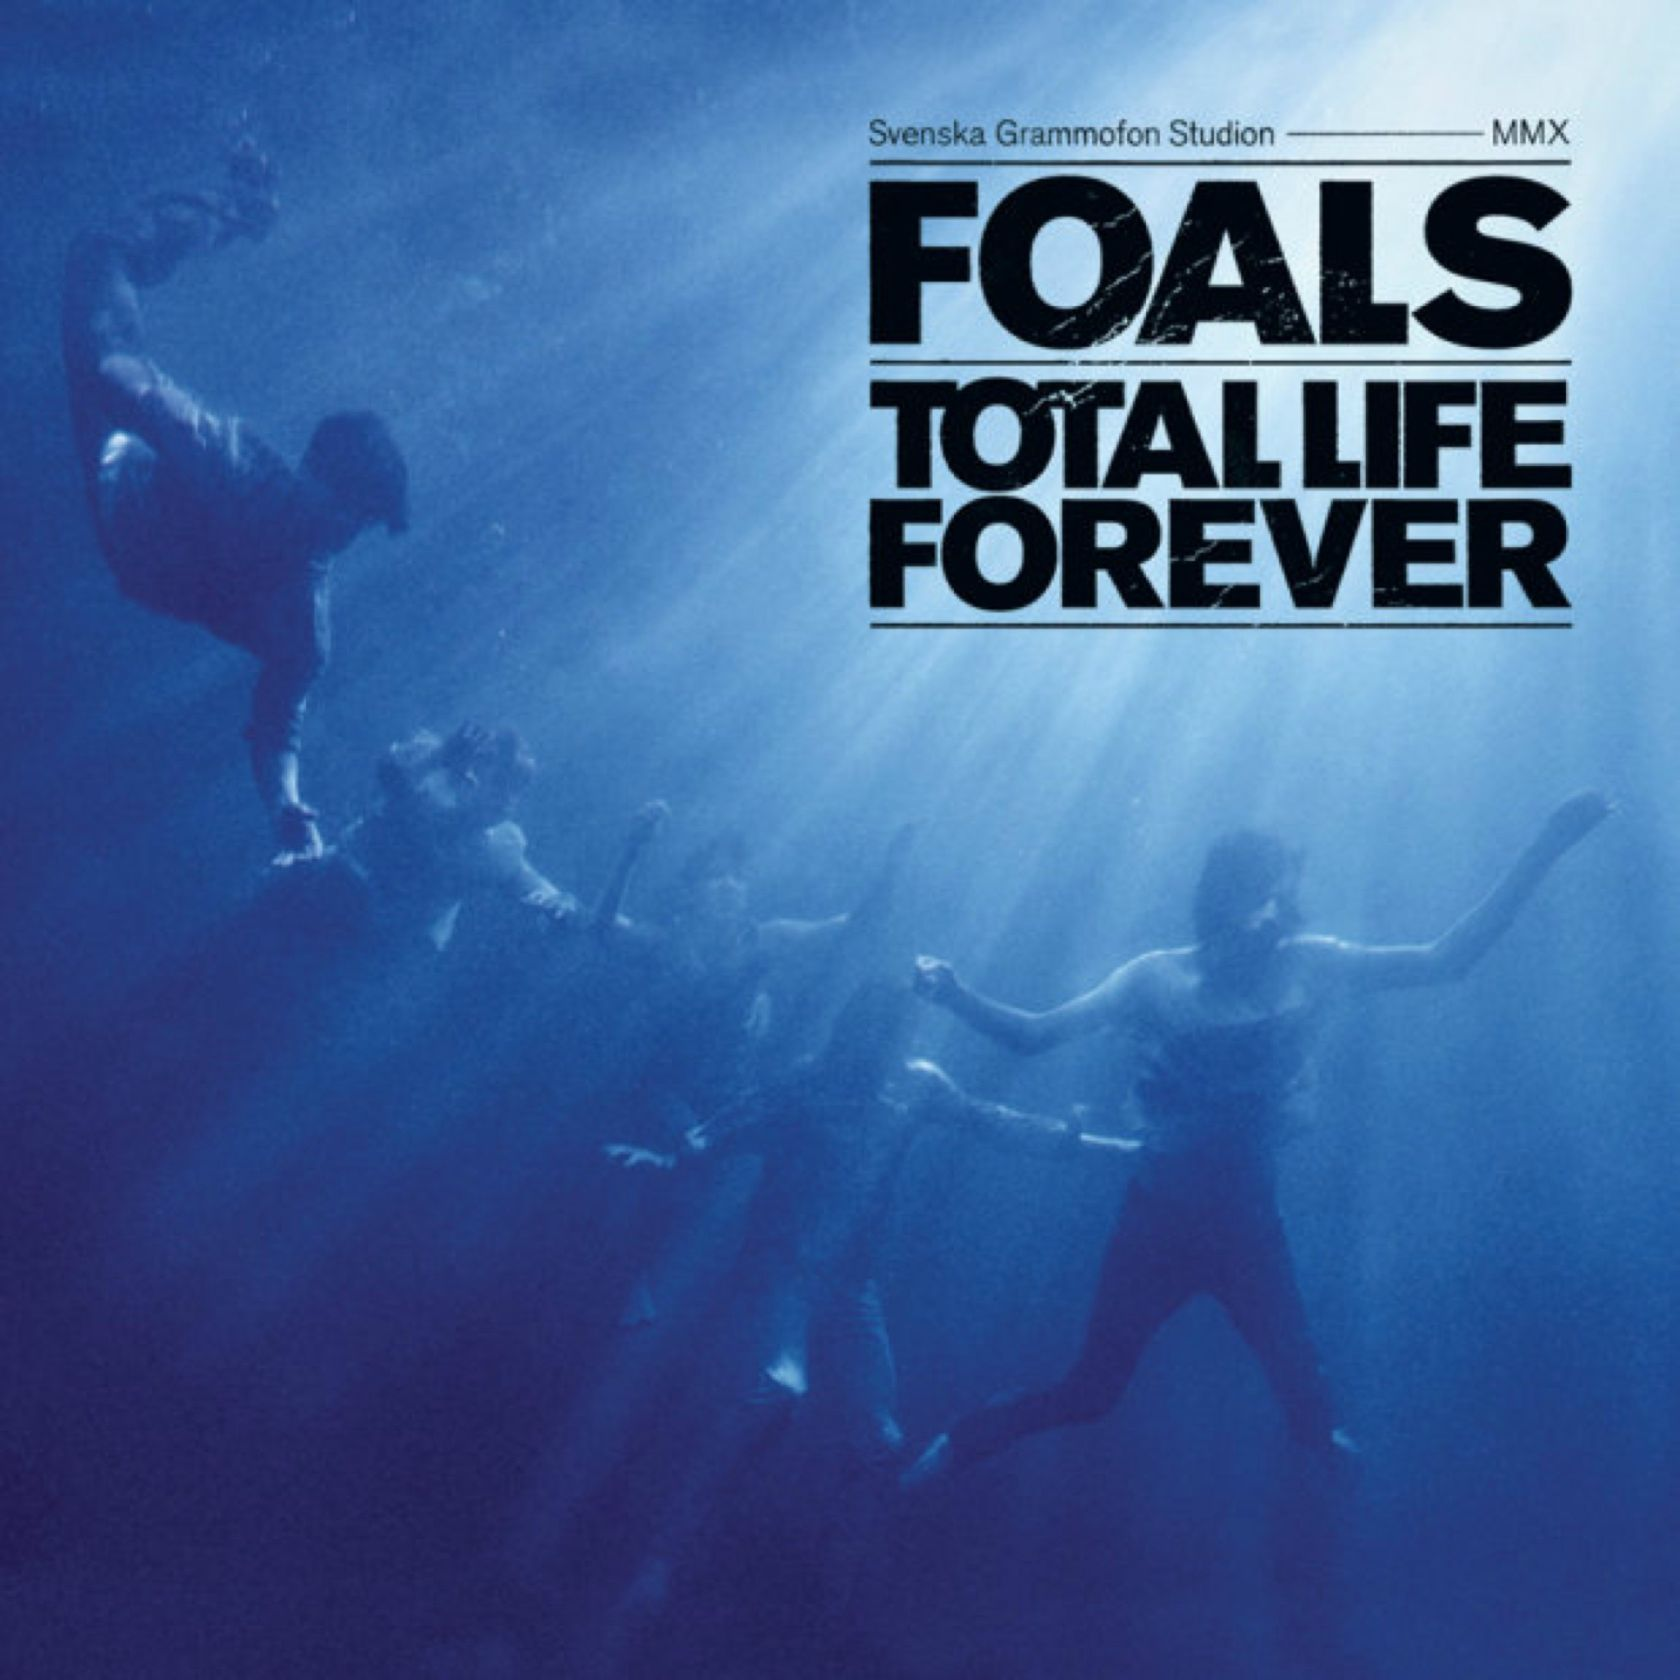 Foals_Total_Life_Forever_Cover